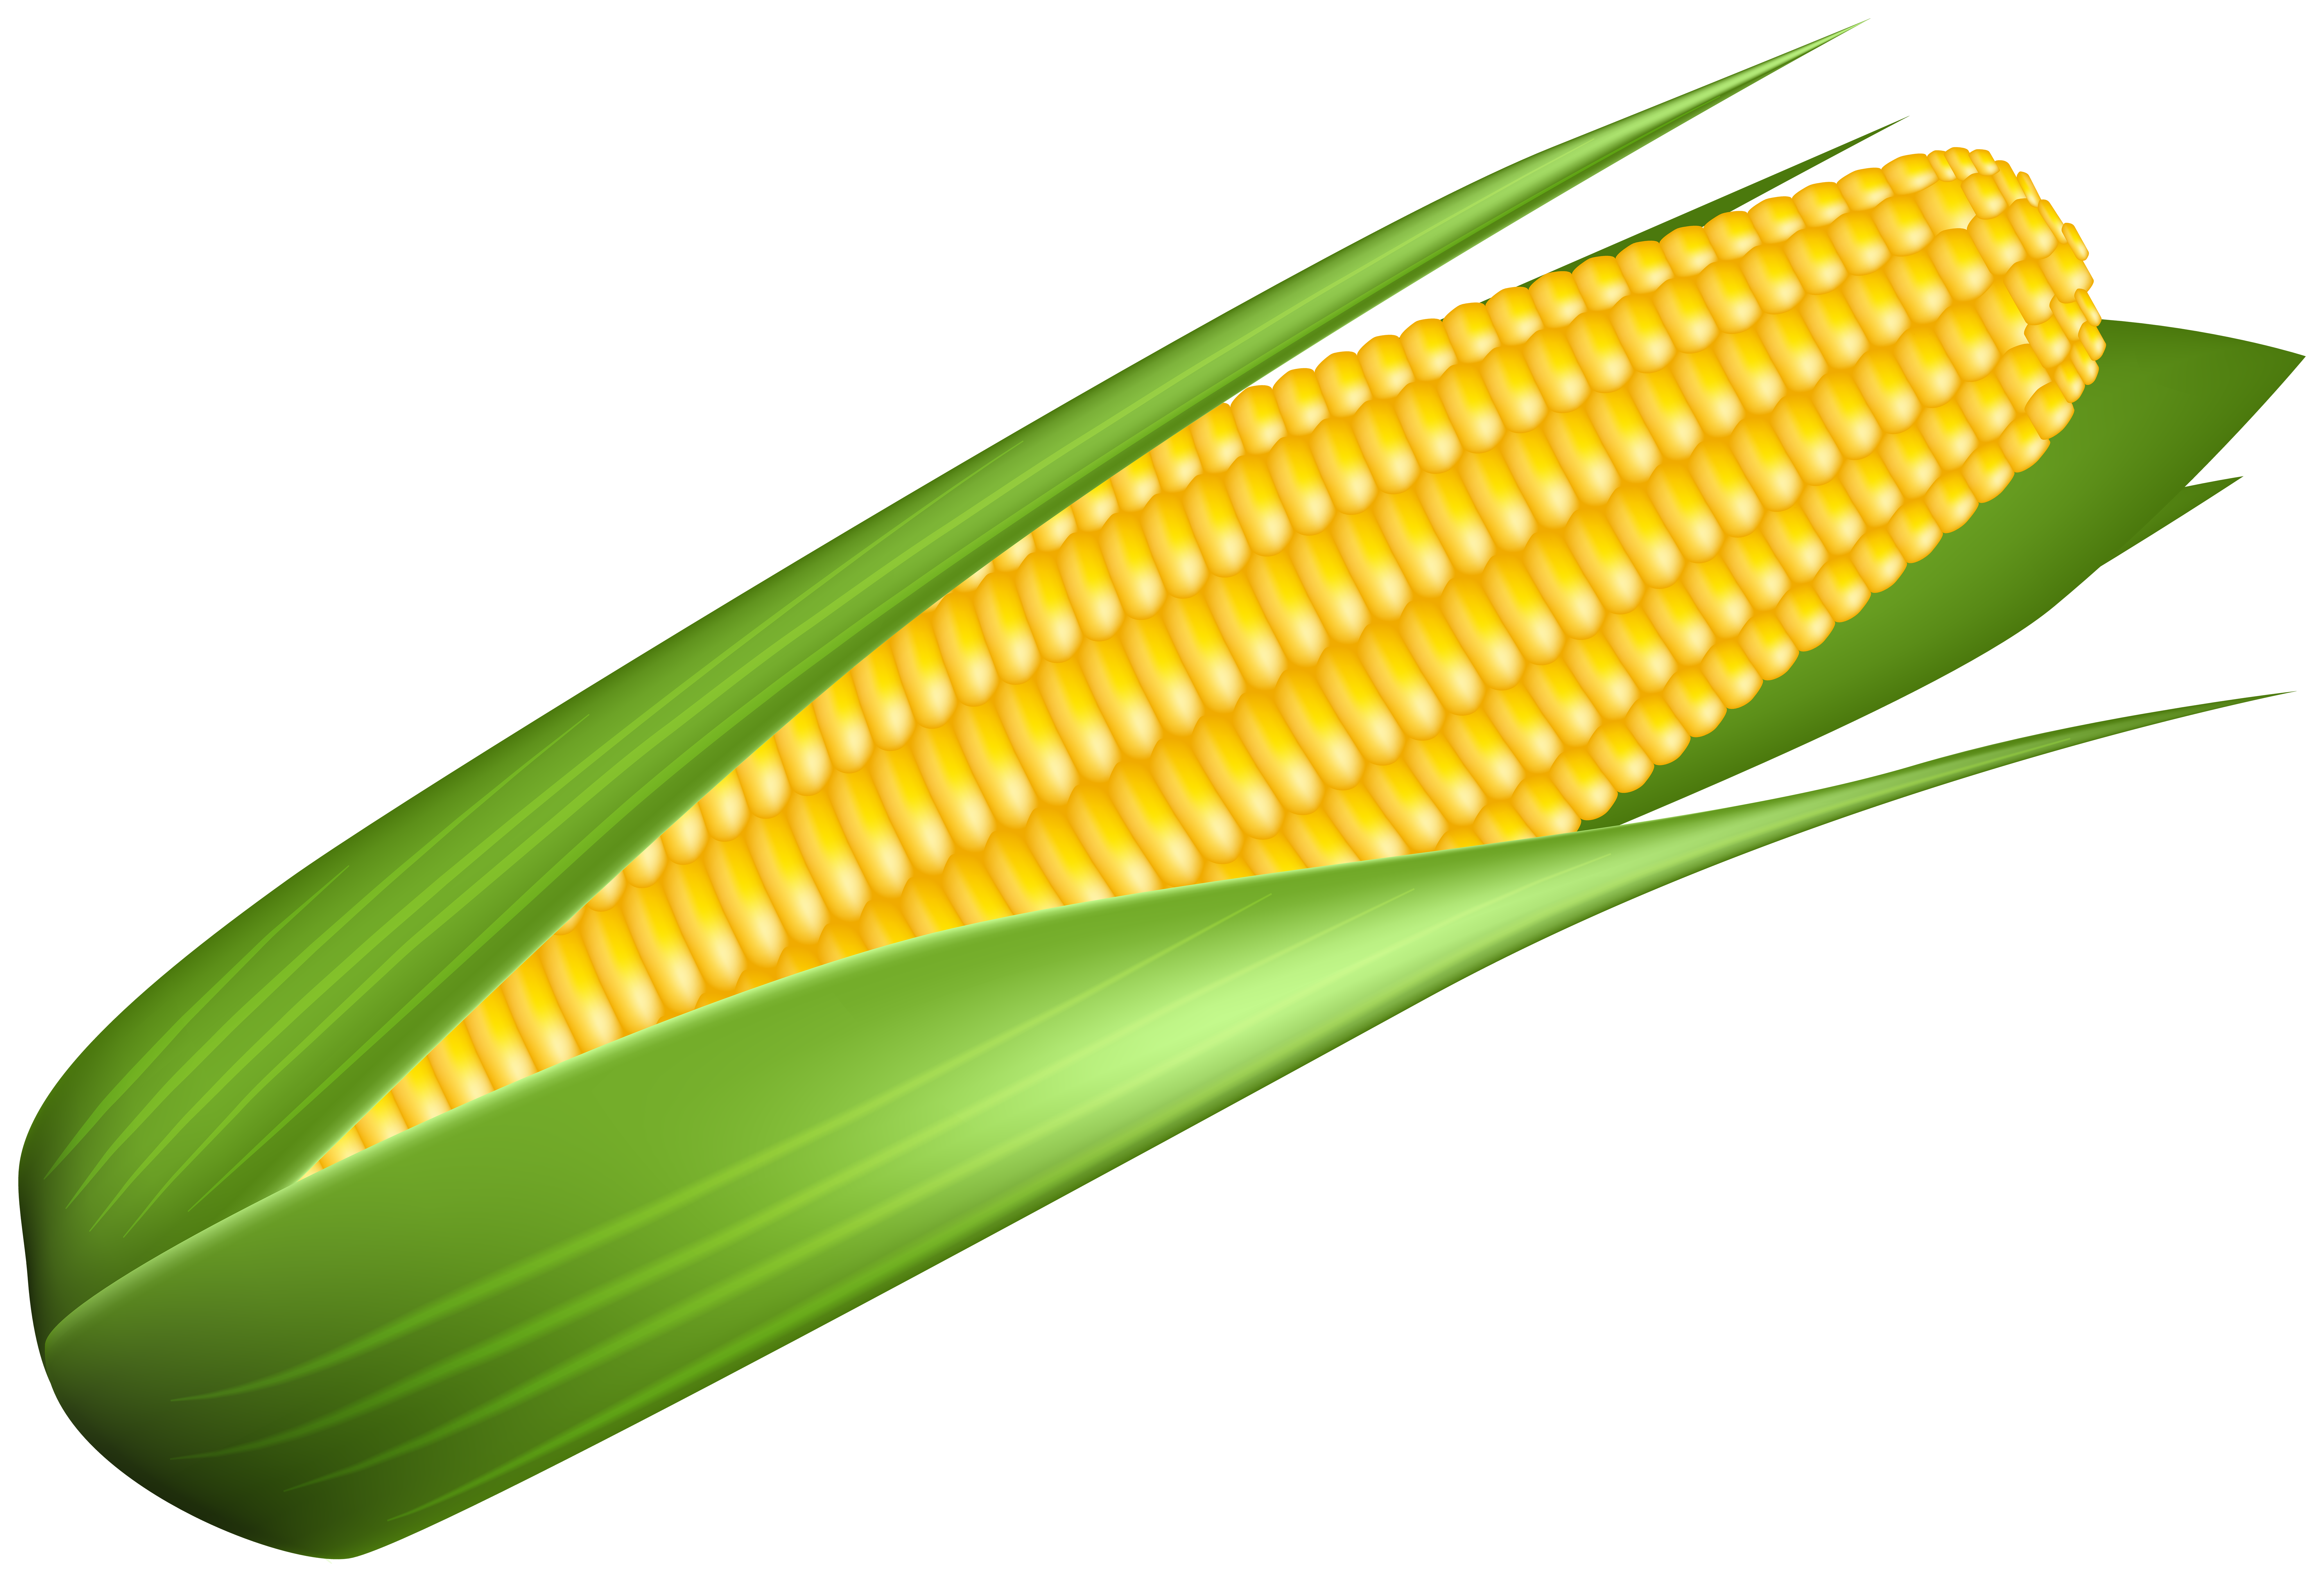 picture black and white stock Corn clipart. Transparent image gallery yopriceville